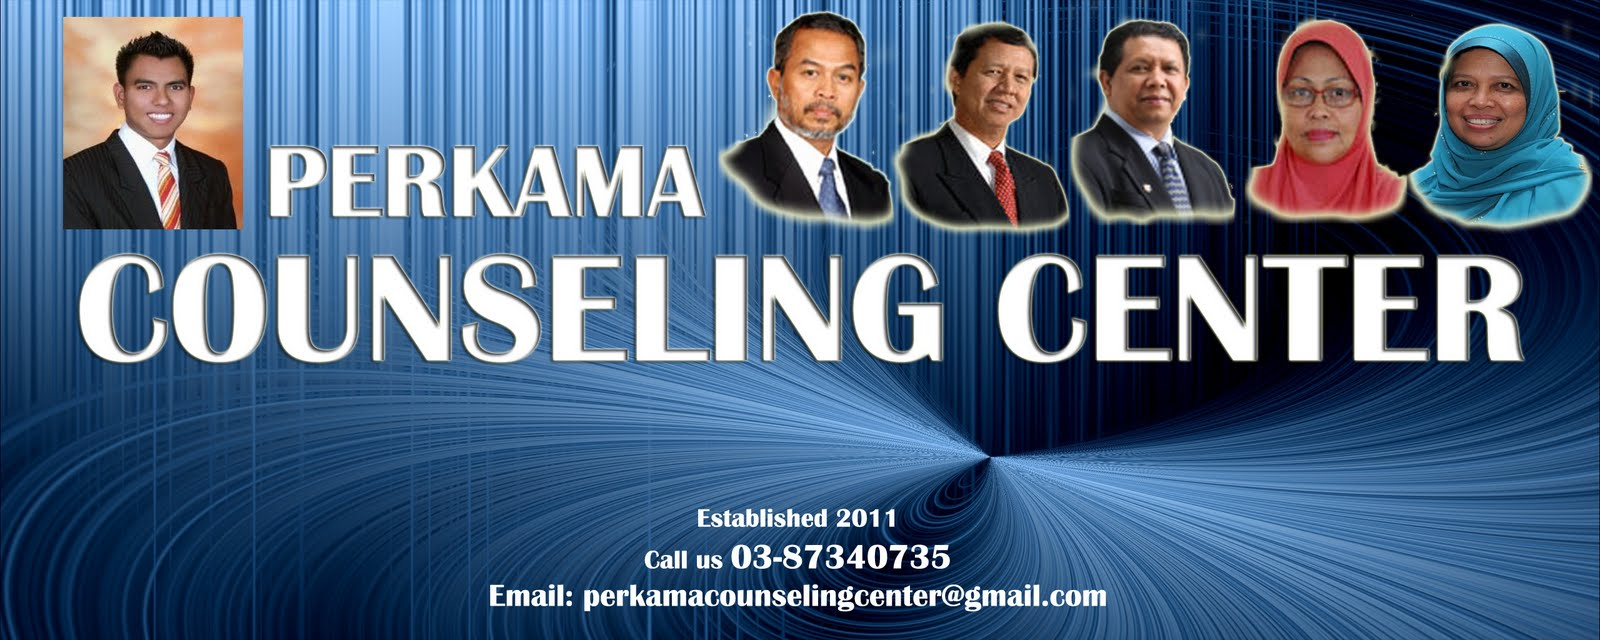 PERKAMA COUNSELING CENTER